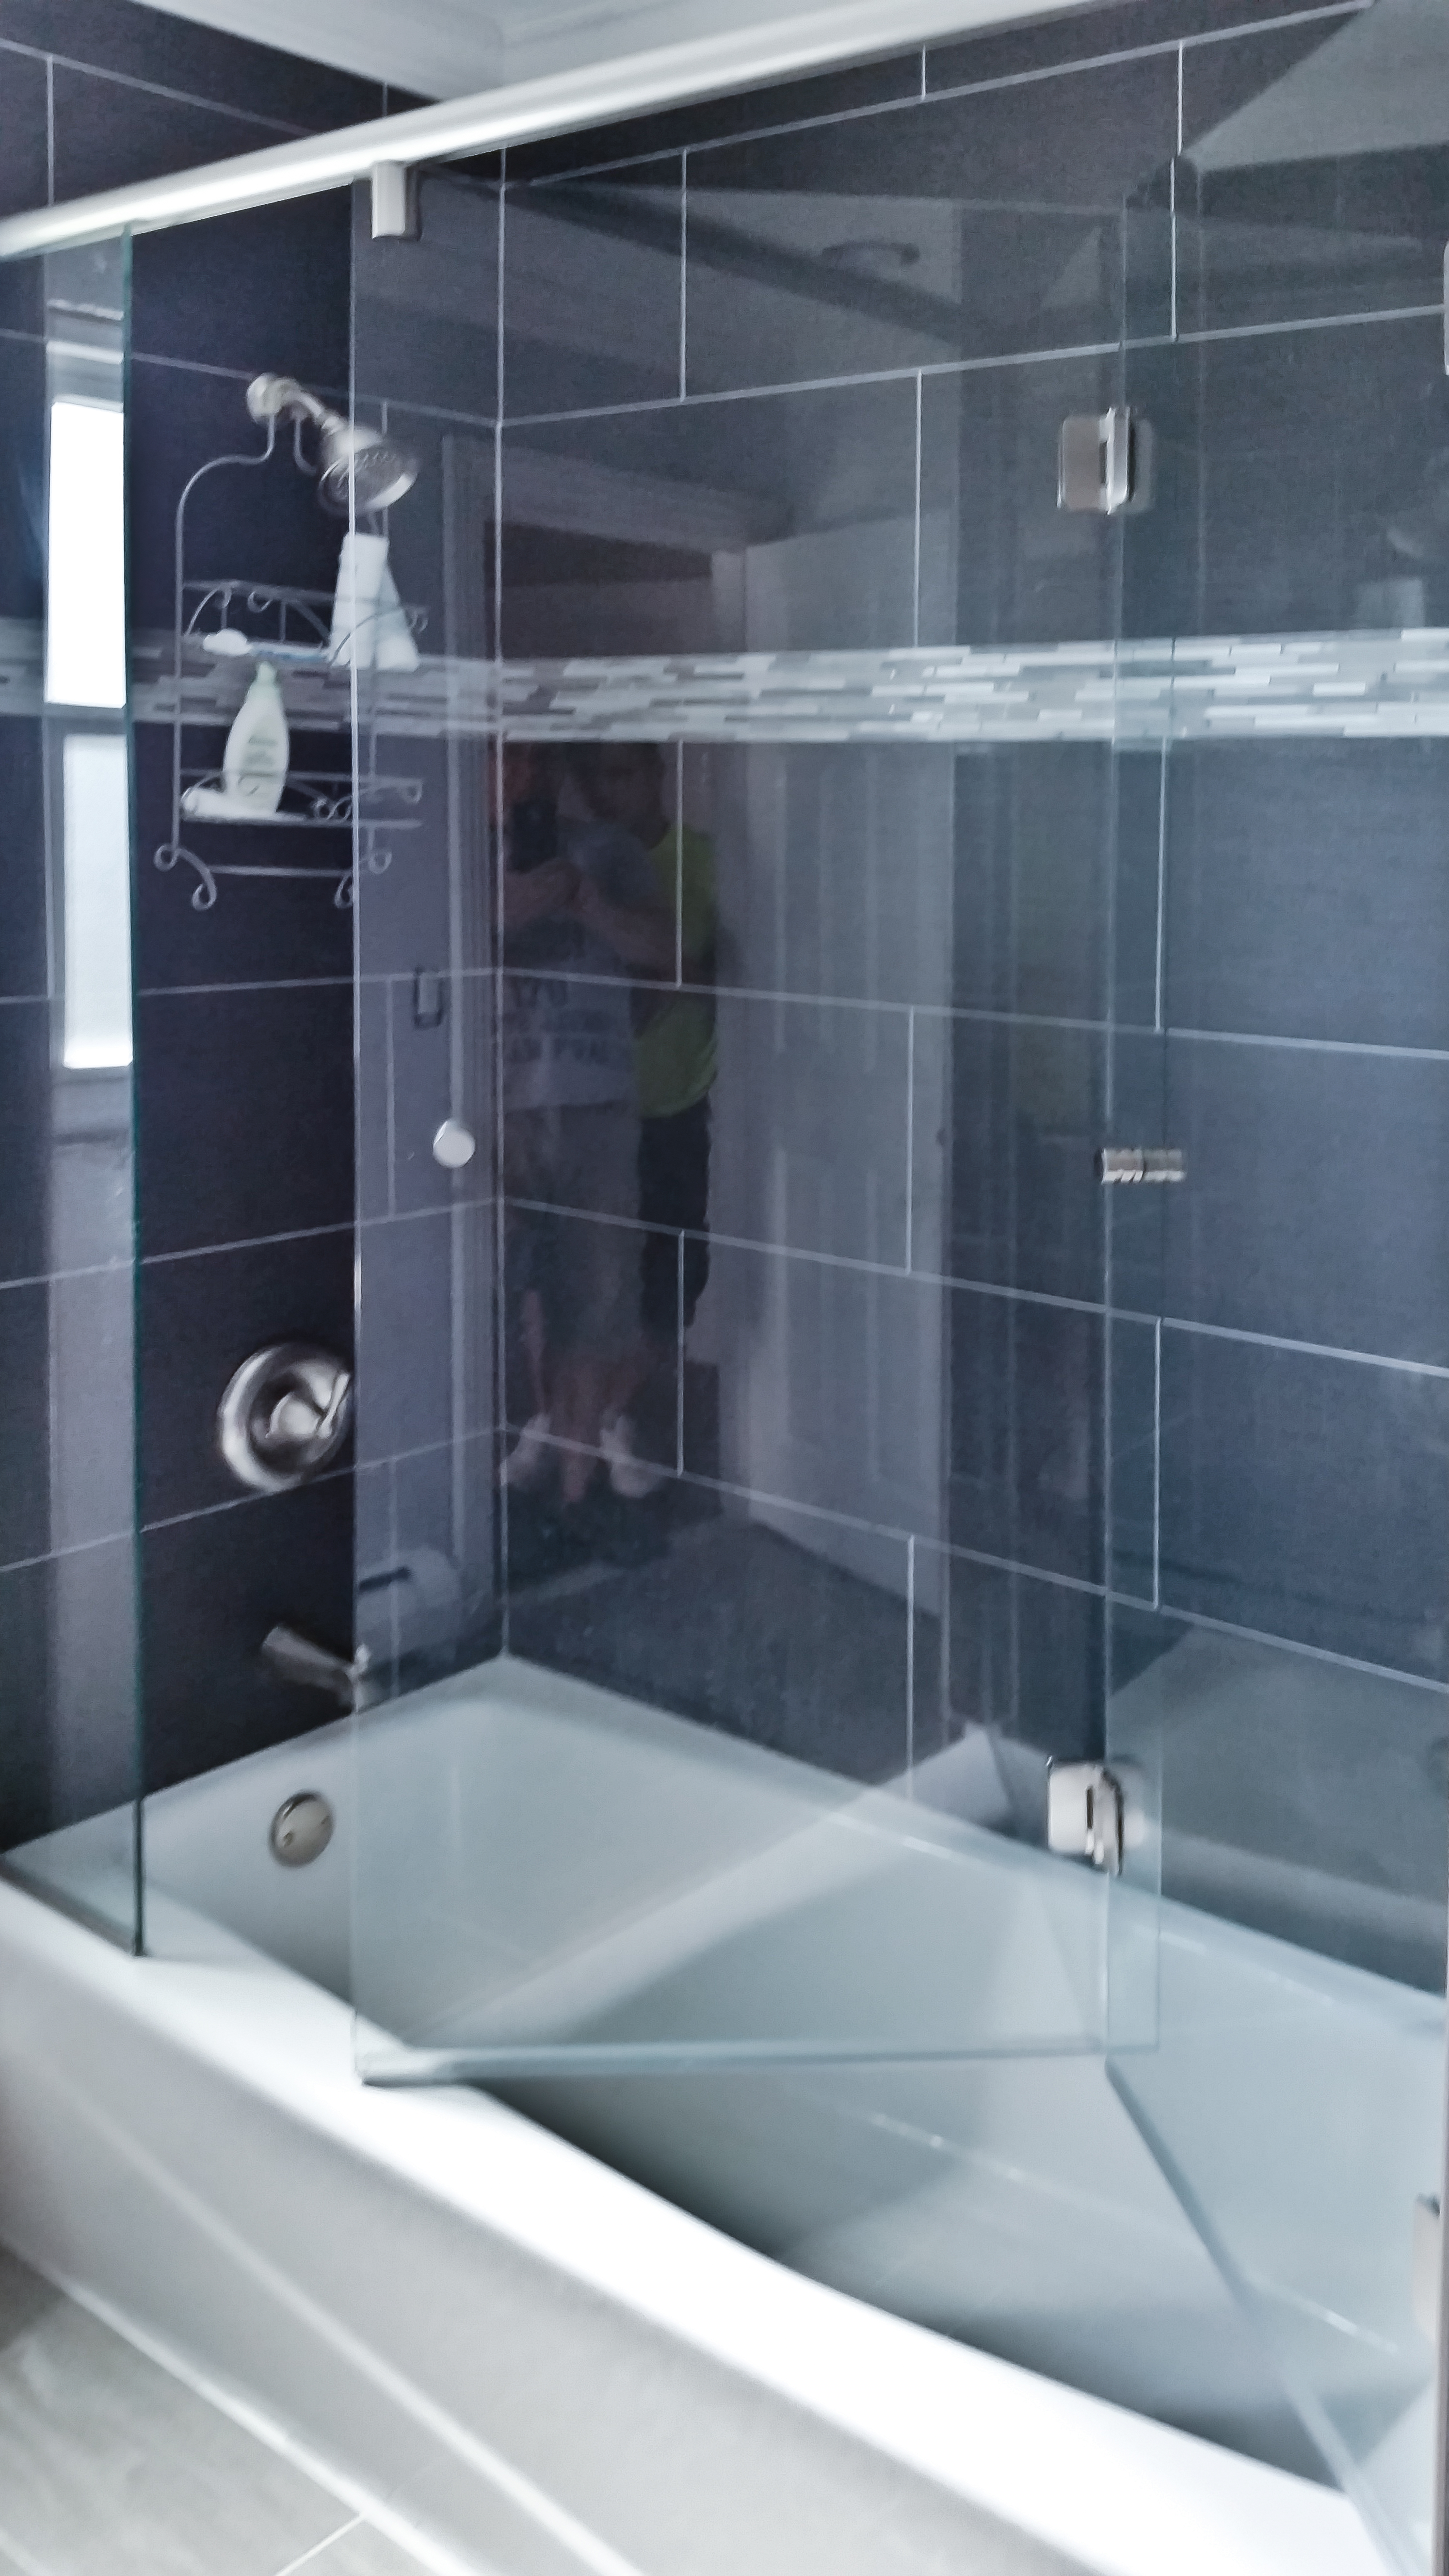 5 - Bifold frameless shower door